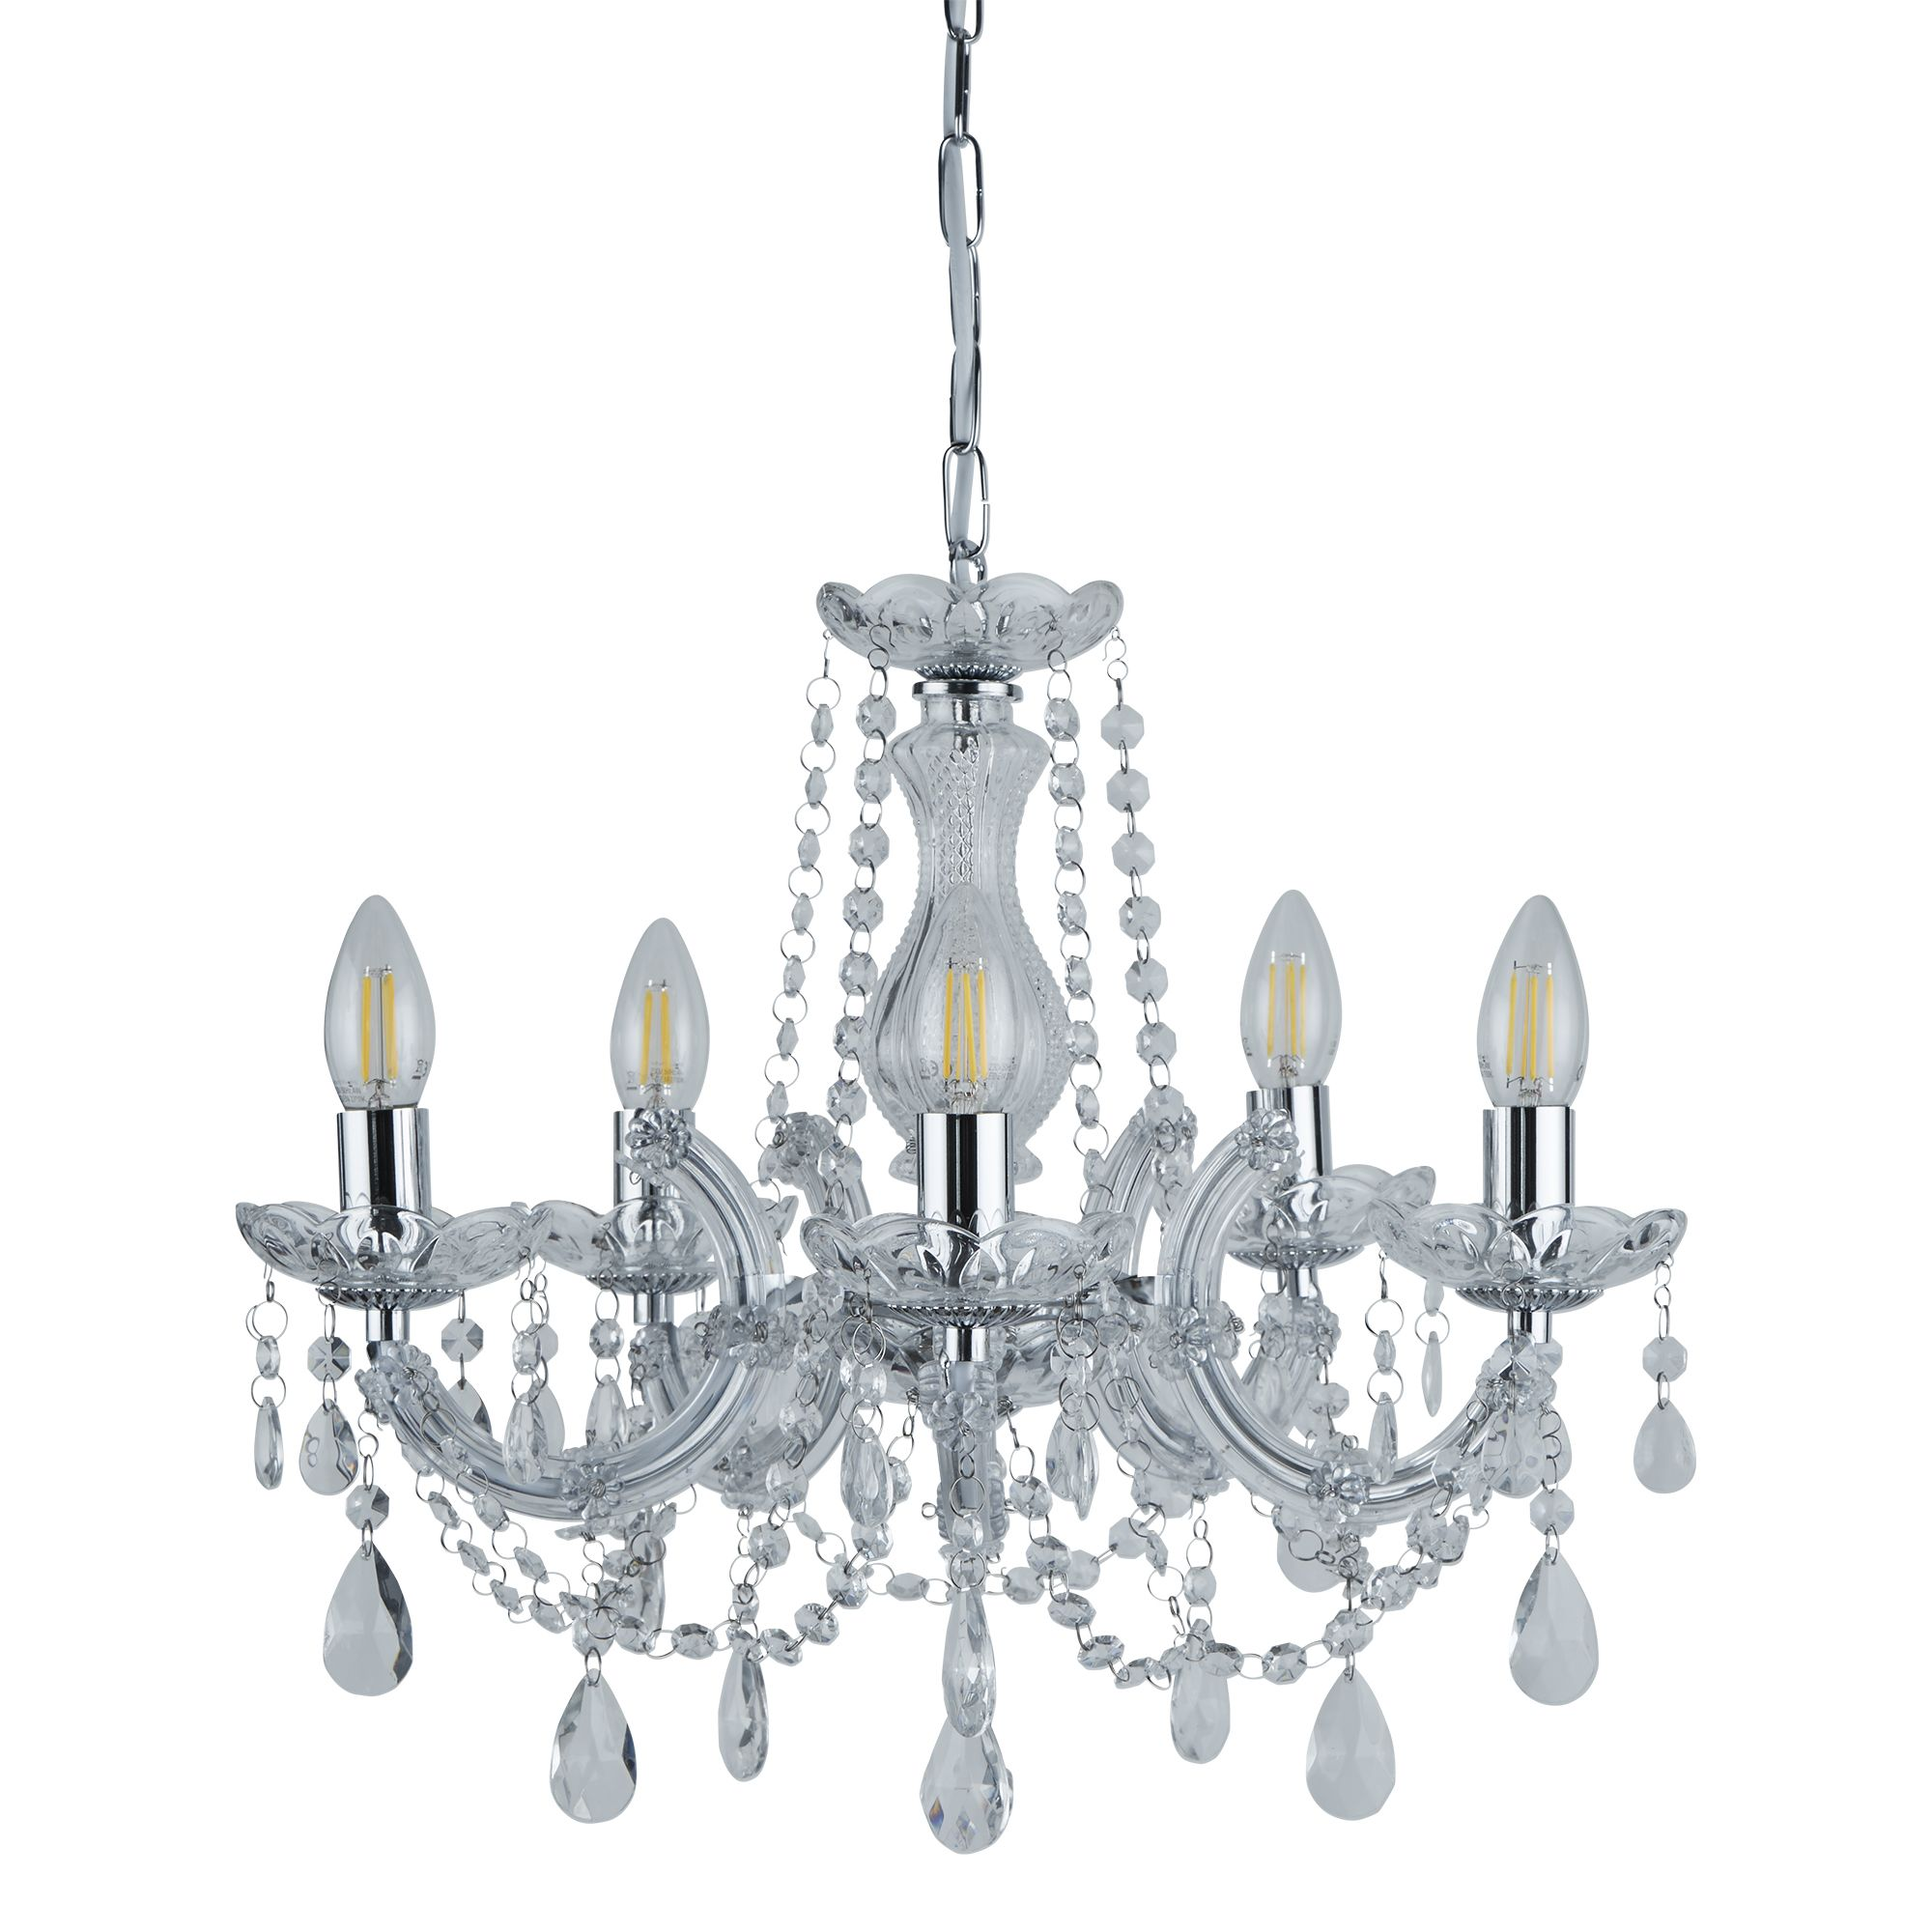 399 5 Marie Therese Chrome 5 Light Glass Chandelier with Crystal Droplets